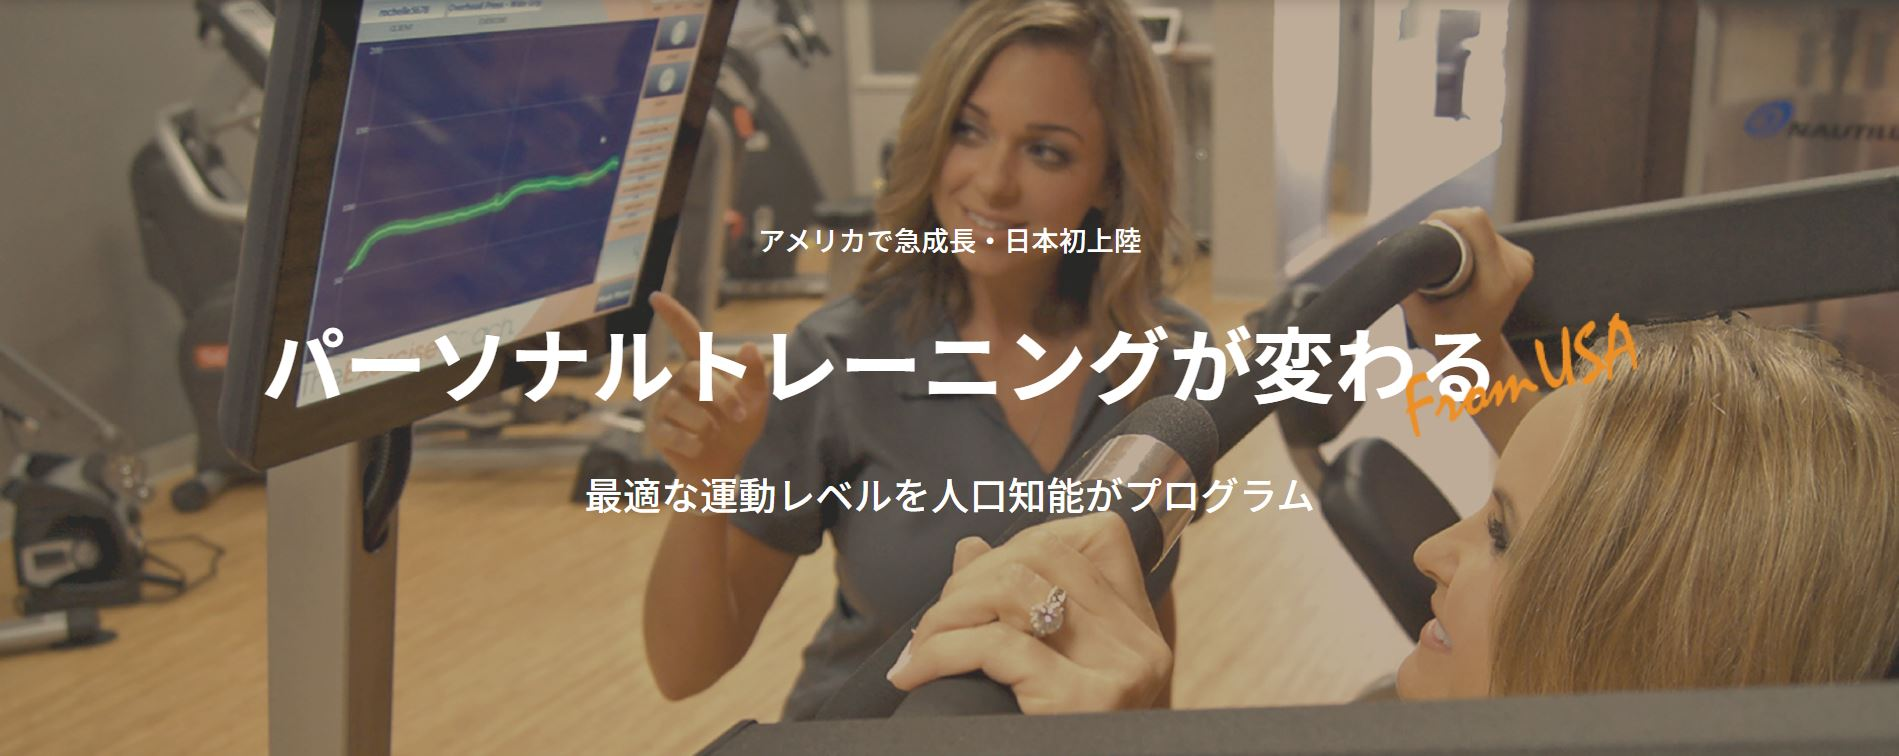 1.THE Exercise Coach(ザ・エクササイズコーチ)